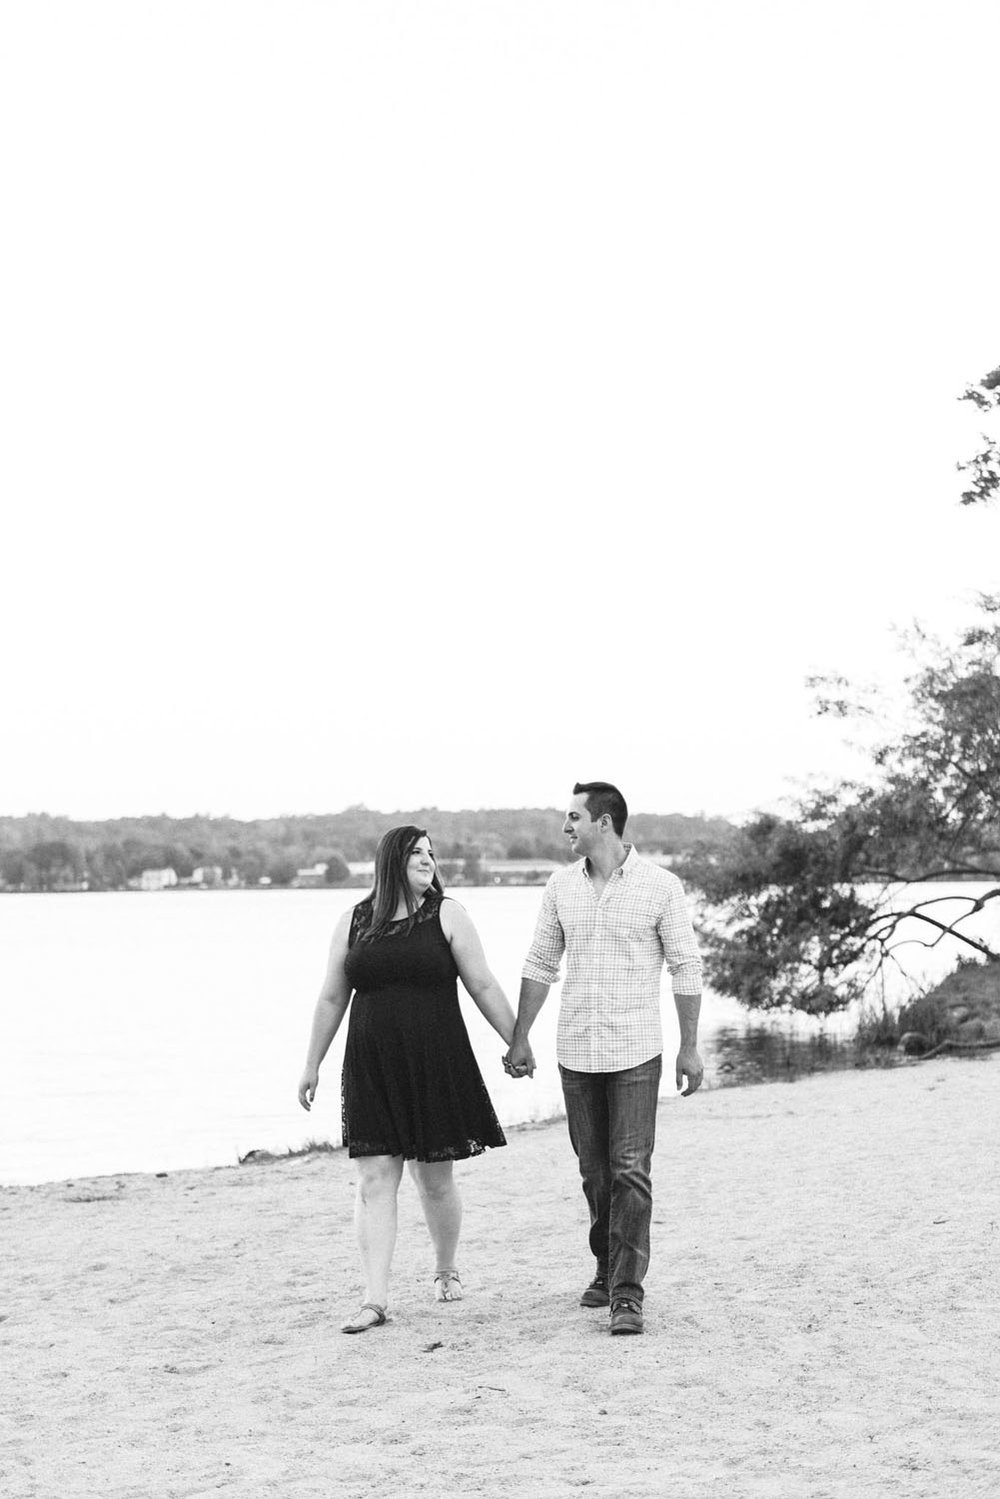 Katelyn + Joe | Summer Sunset Lake Quannapowitt Wakefield Engagement Session | Boston and New England Wedding Photography | Lorna Stell Photo